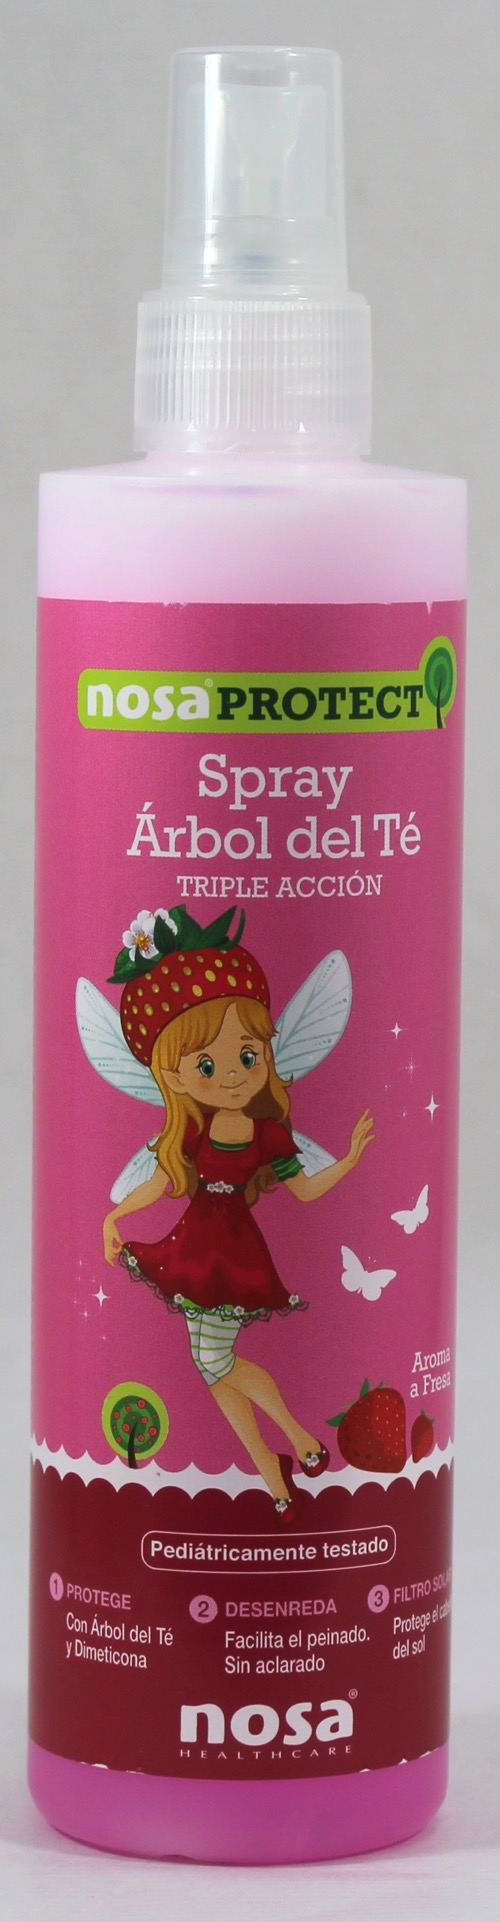 NOSAPROTECT SPRAY ARBOL DEL TE ROSA 250 ML